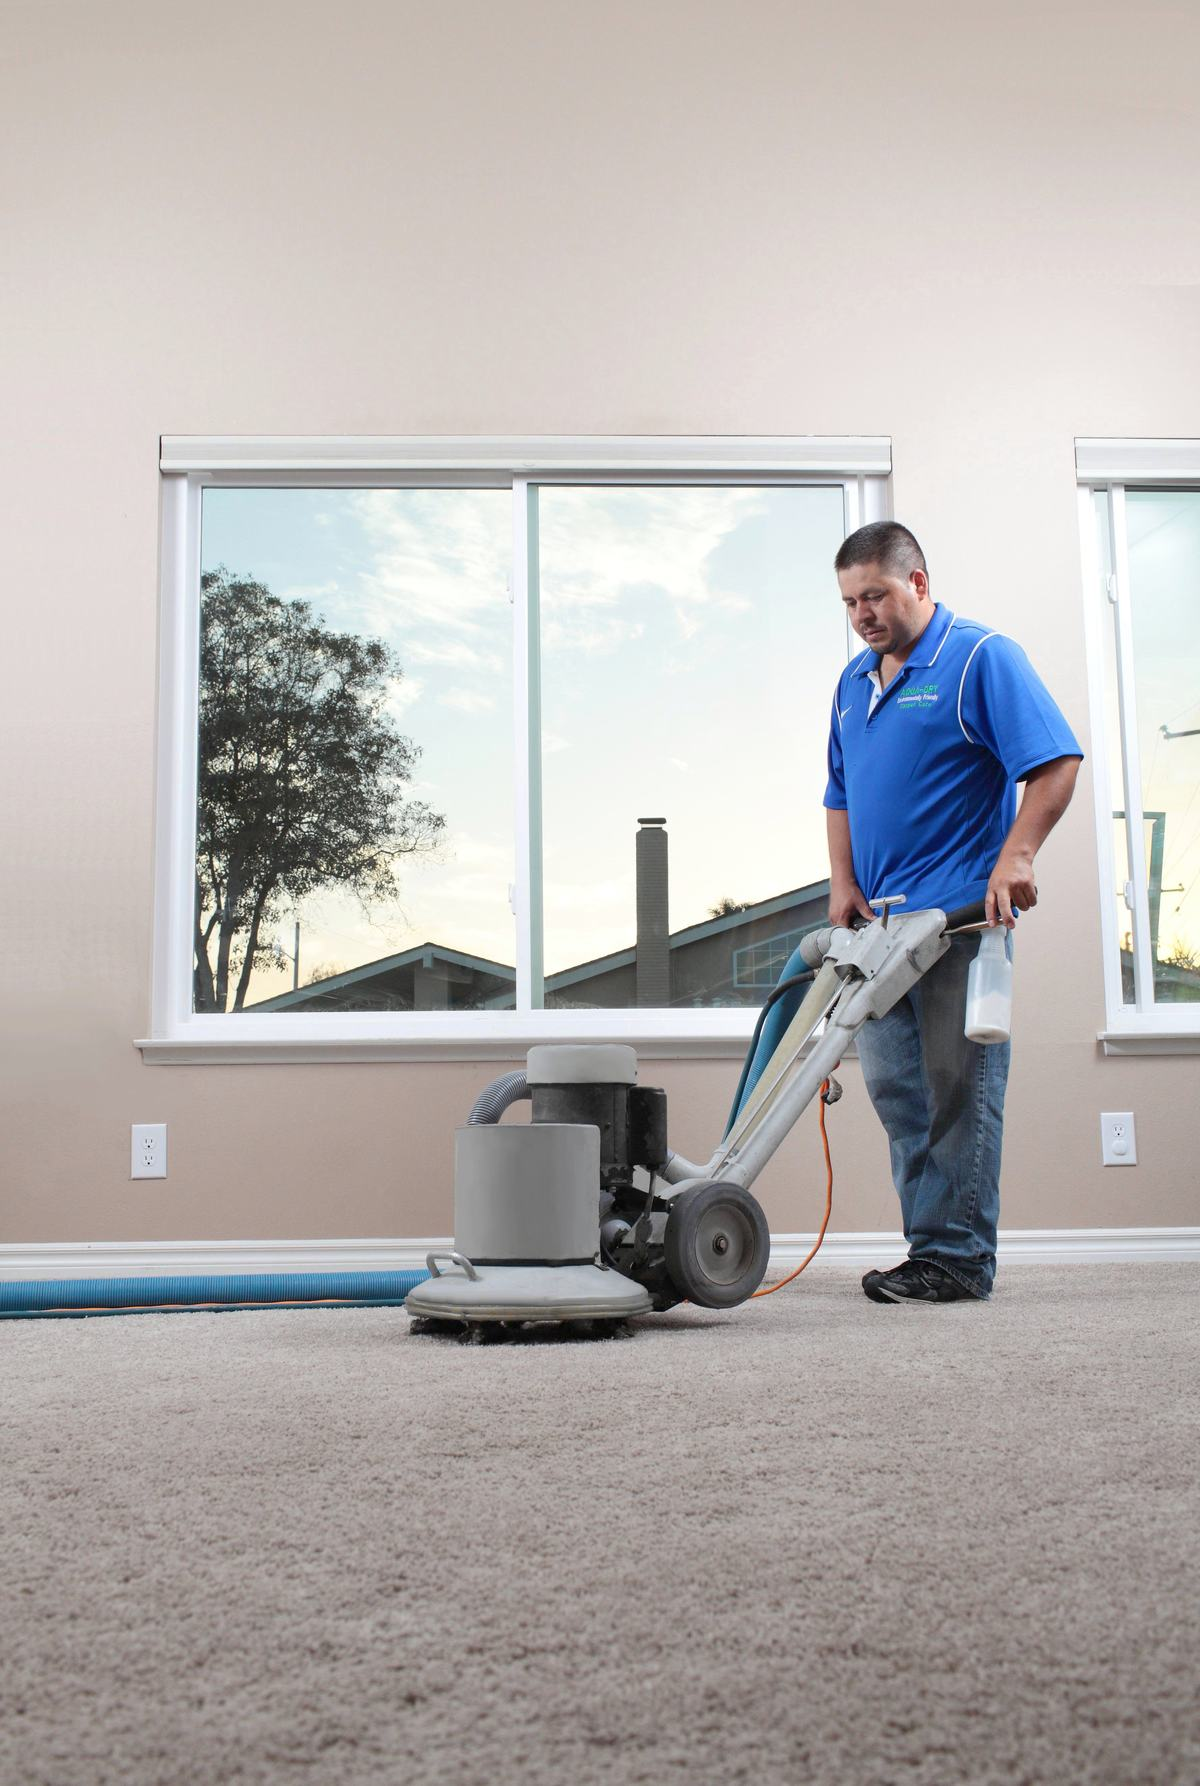 Our high-pressure cleaning system allows us to deep clean carpets and upholstery using minimal moisture.